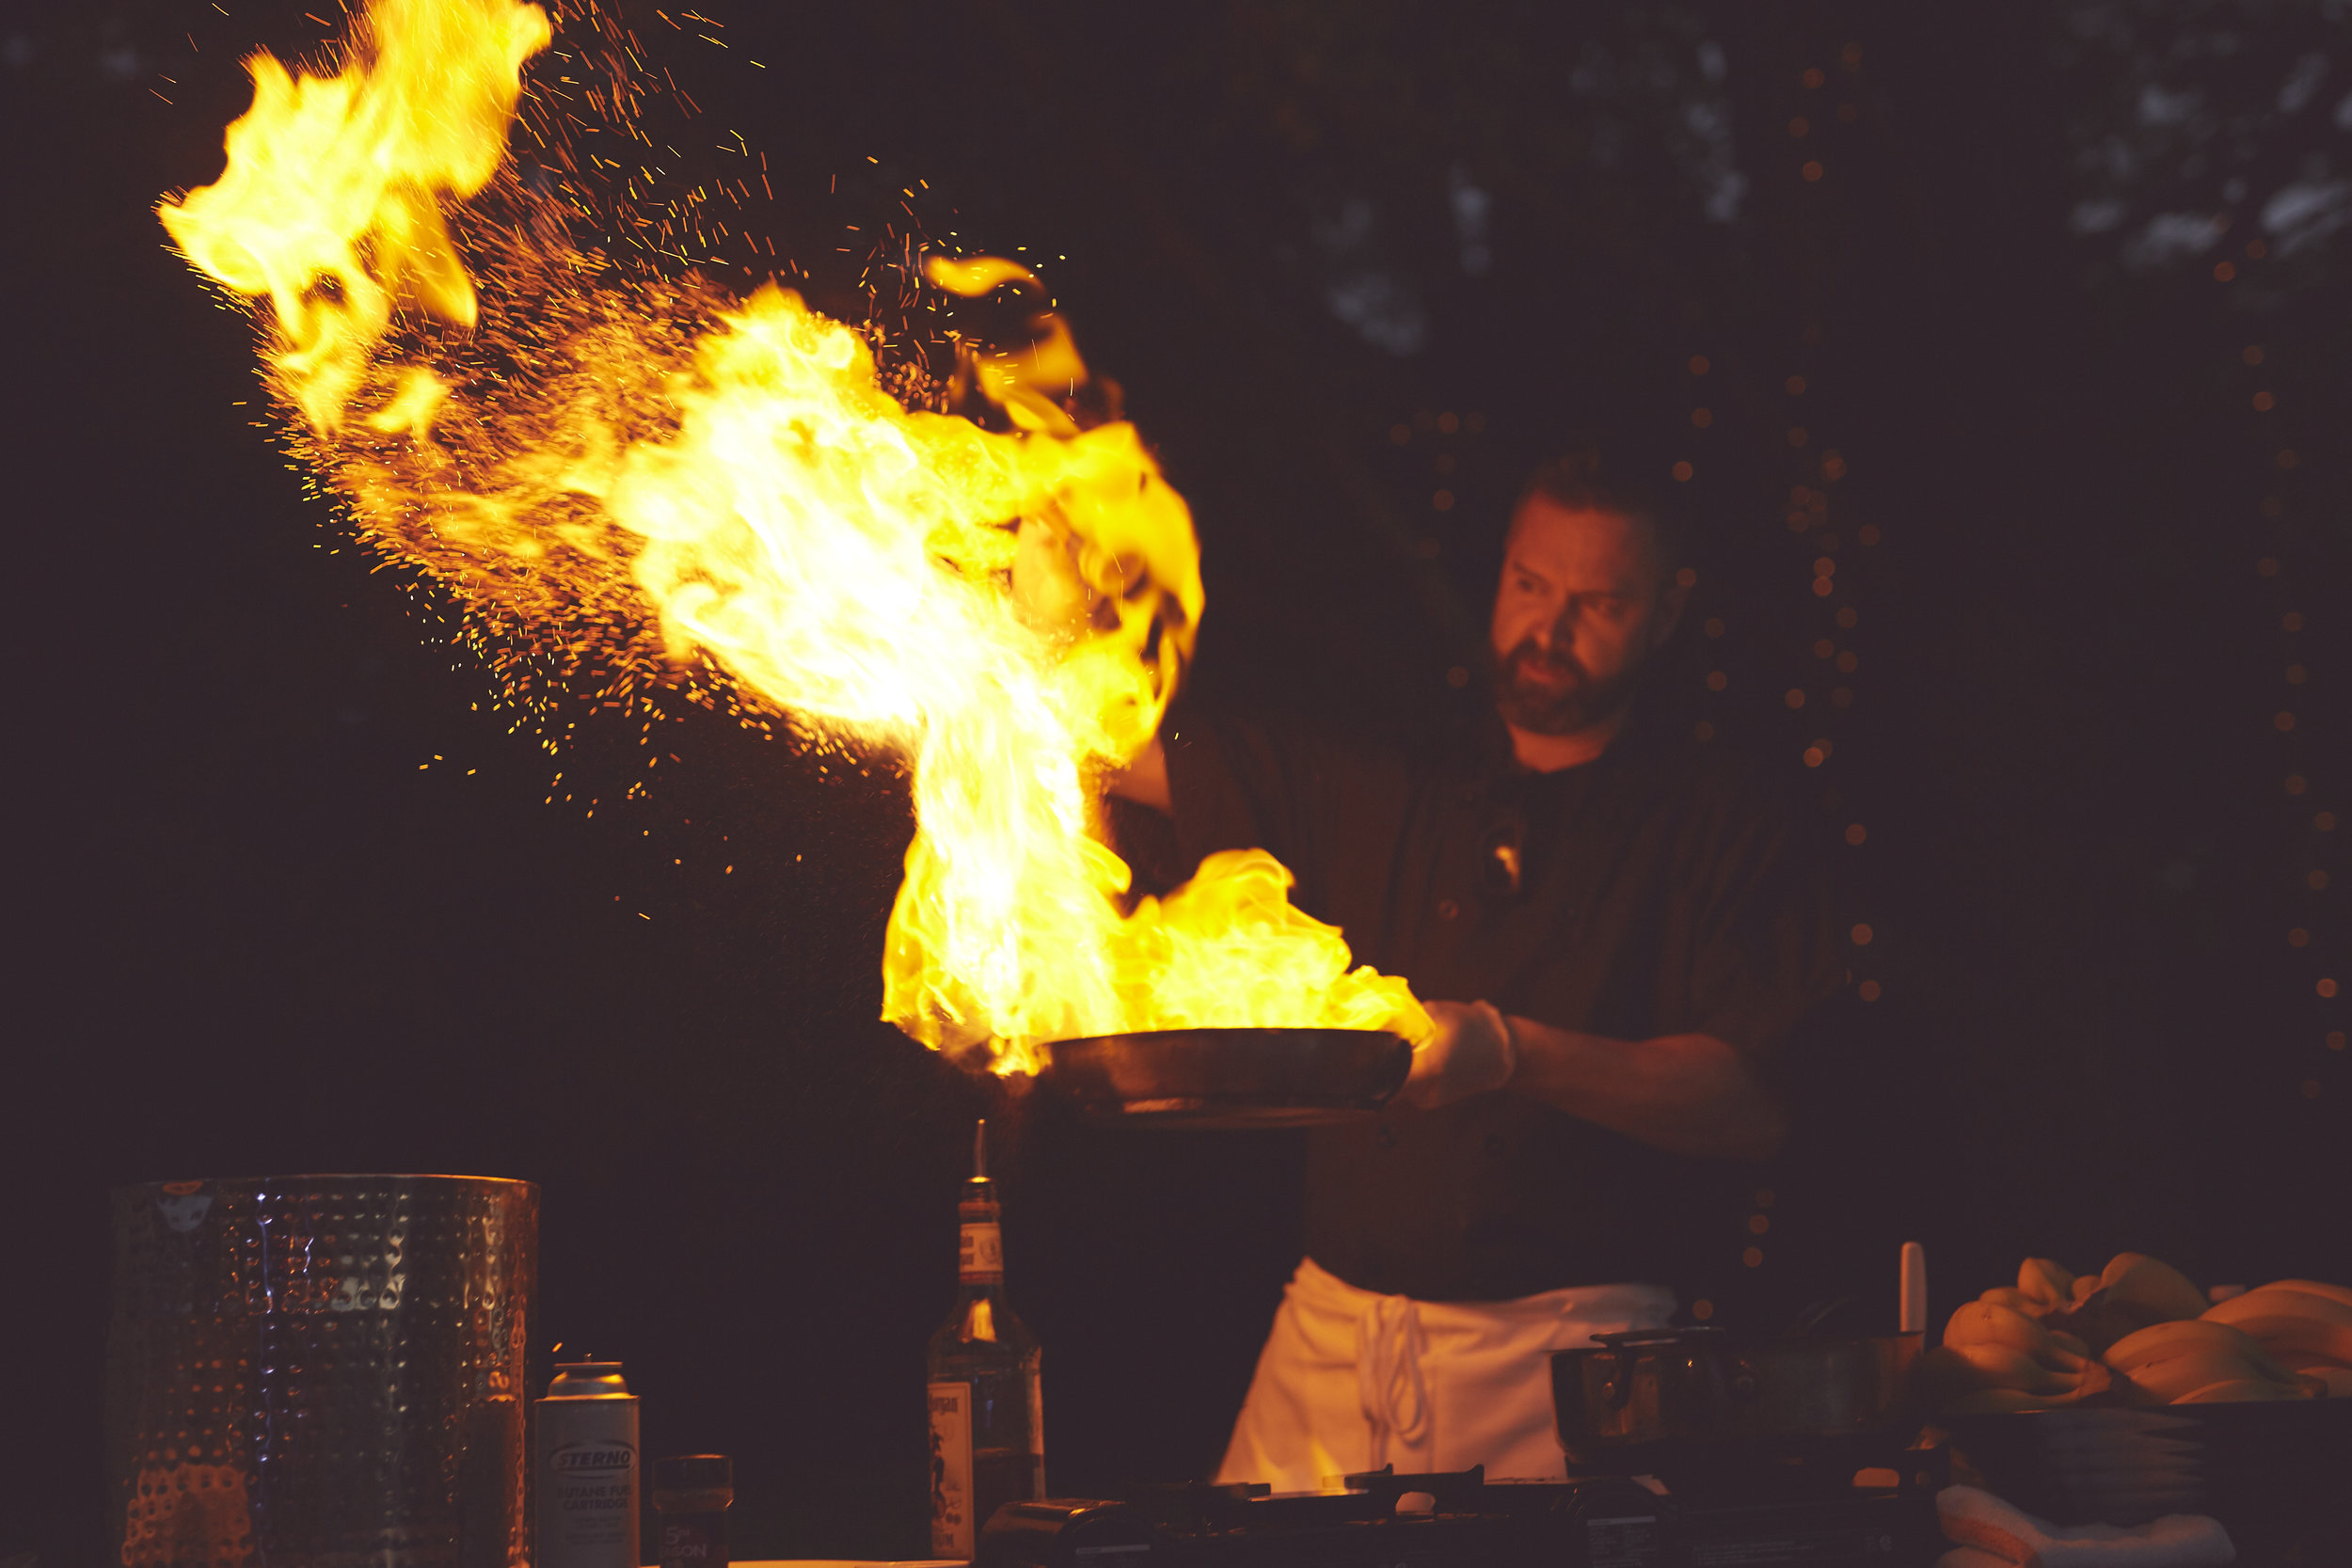 portrait of cook at event with big flame in pan